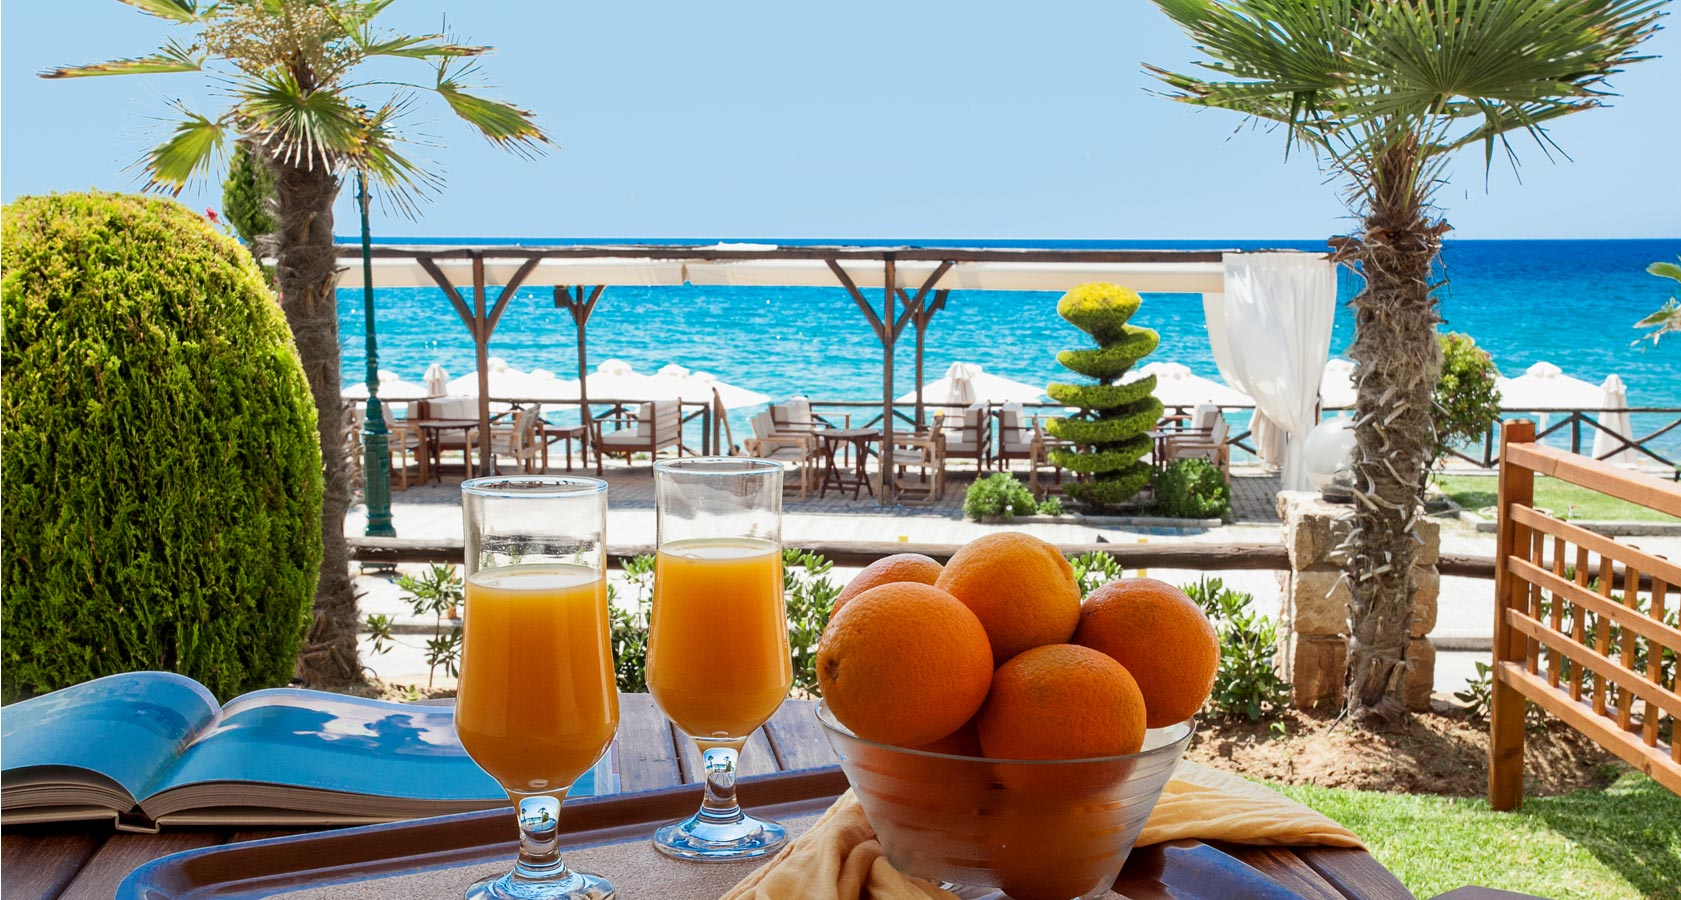 Enjoy your favorite refreshment, juice or drink overlooking the sea